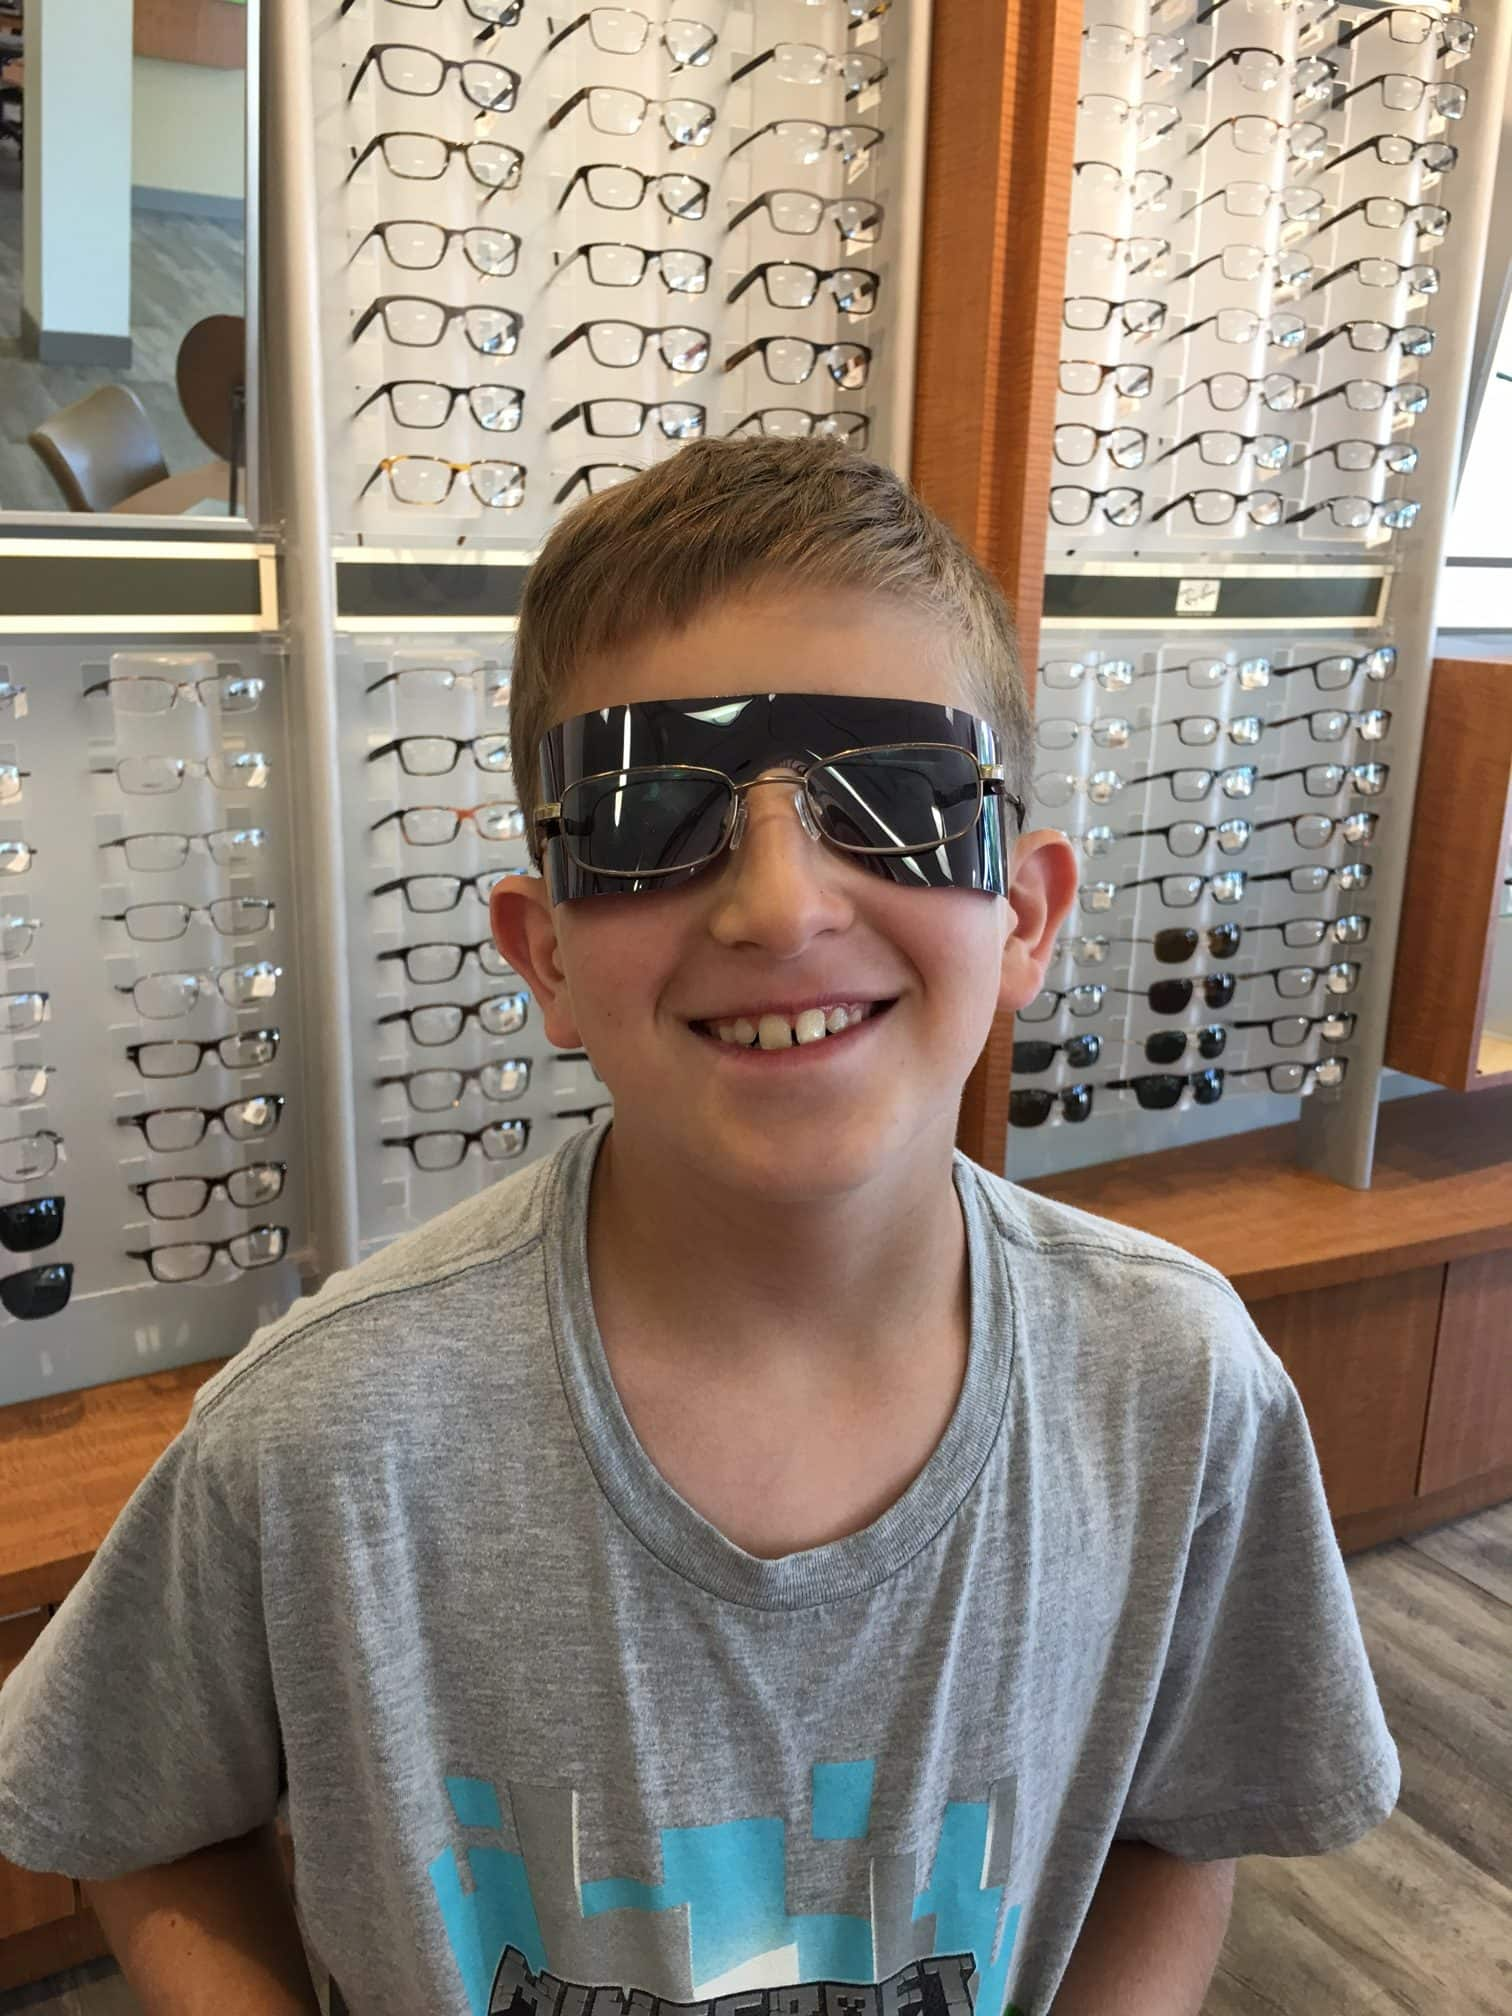 6acb4f58f4e Liam got to walk out of Pearle Vision with some funny new shades! Just  kidding! In order to check the back of his eyes